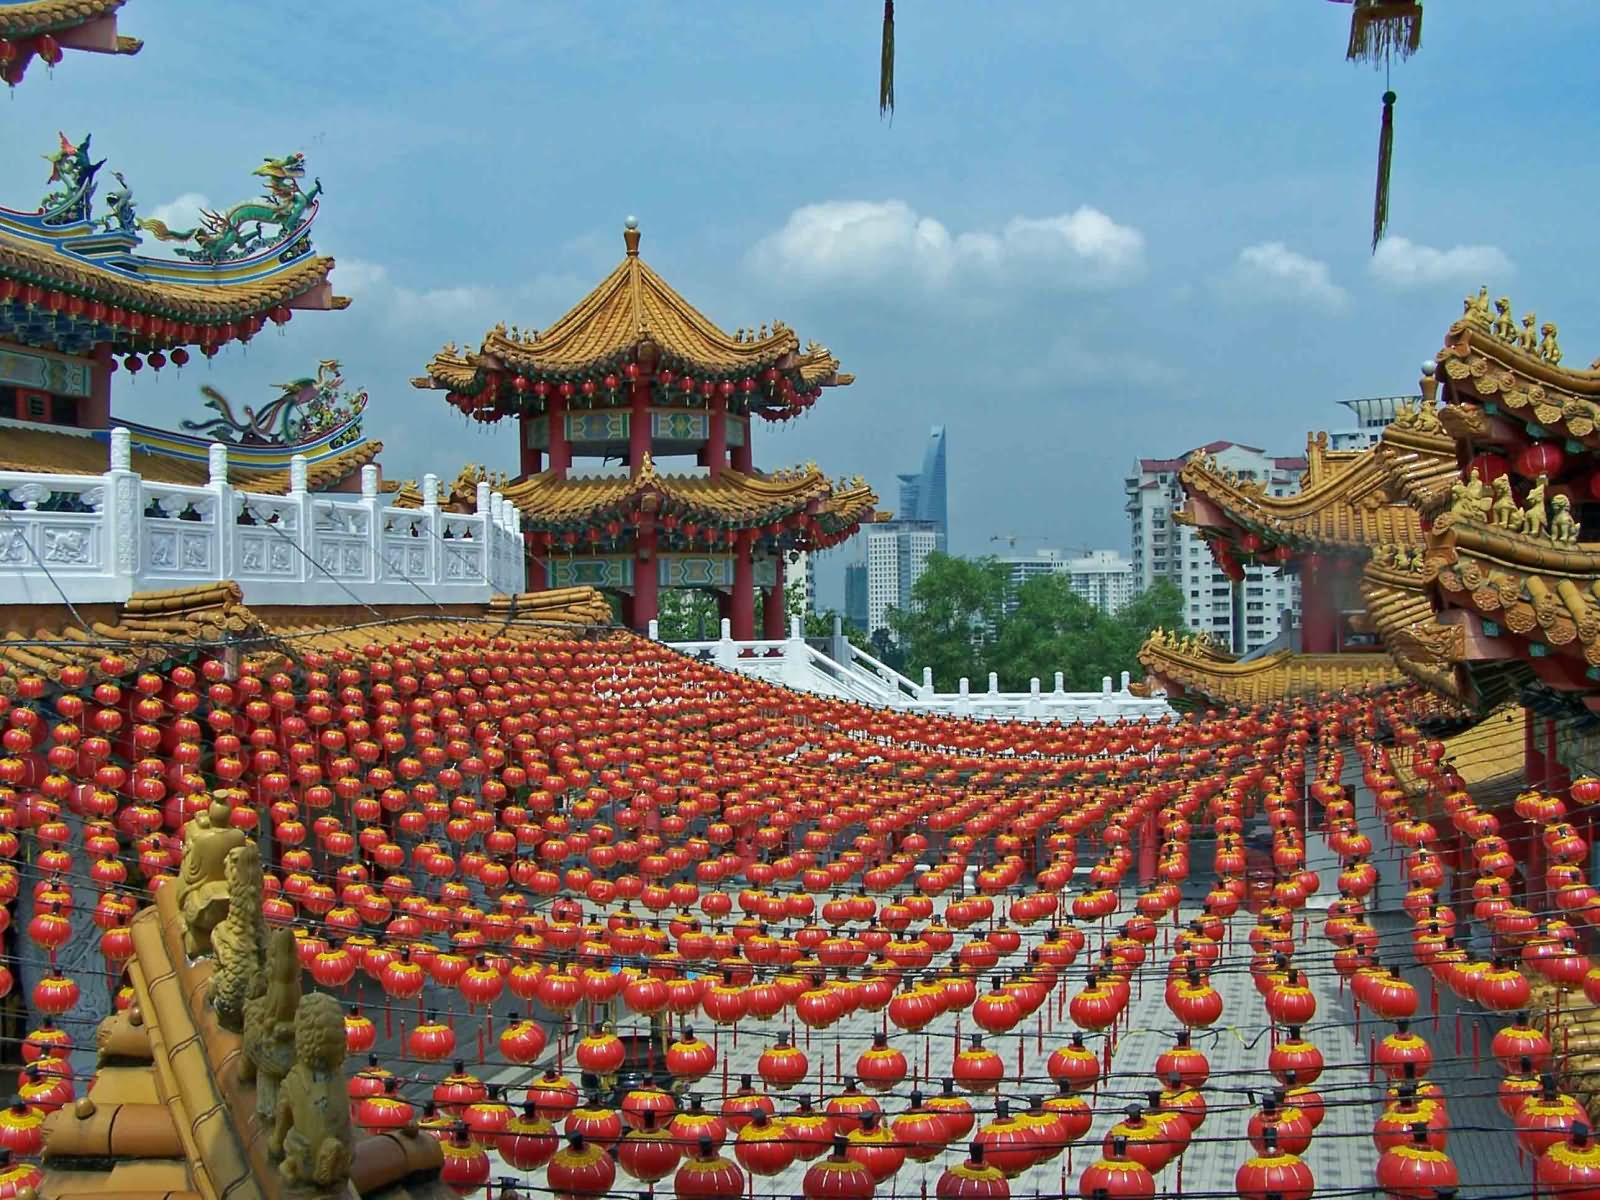 Thean Hou Temple Extravagant Colorful Image